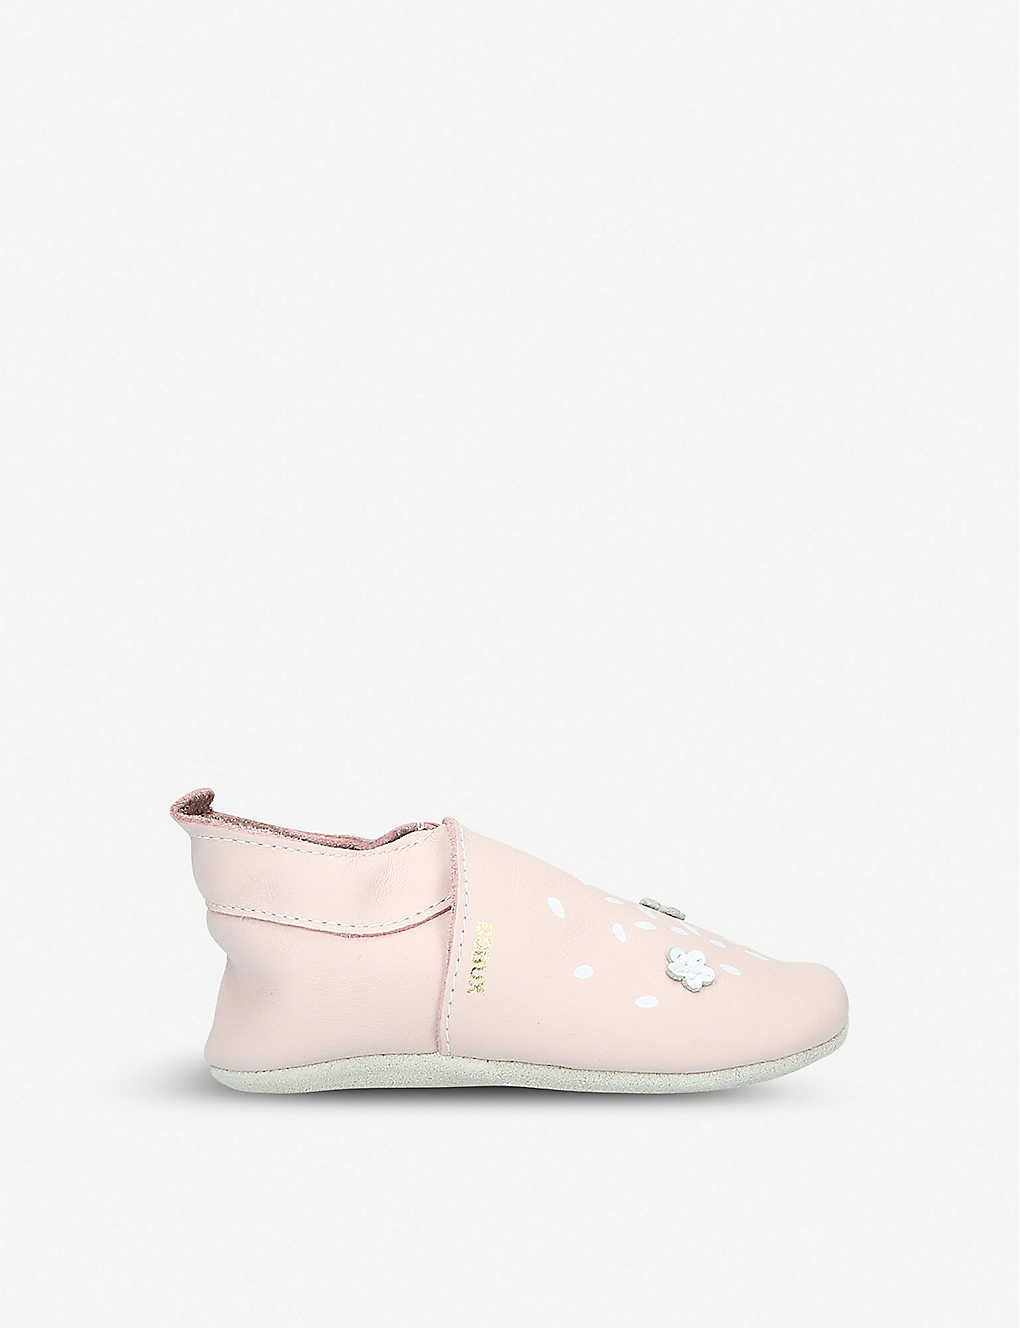 BOBUX: Cherry Blossom leather shoes